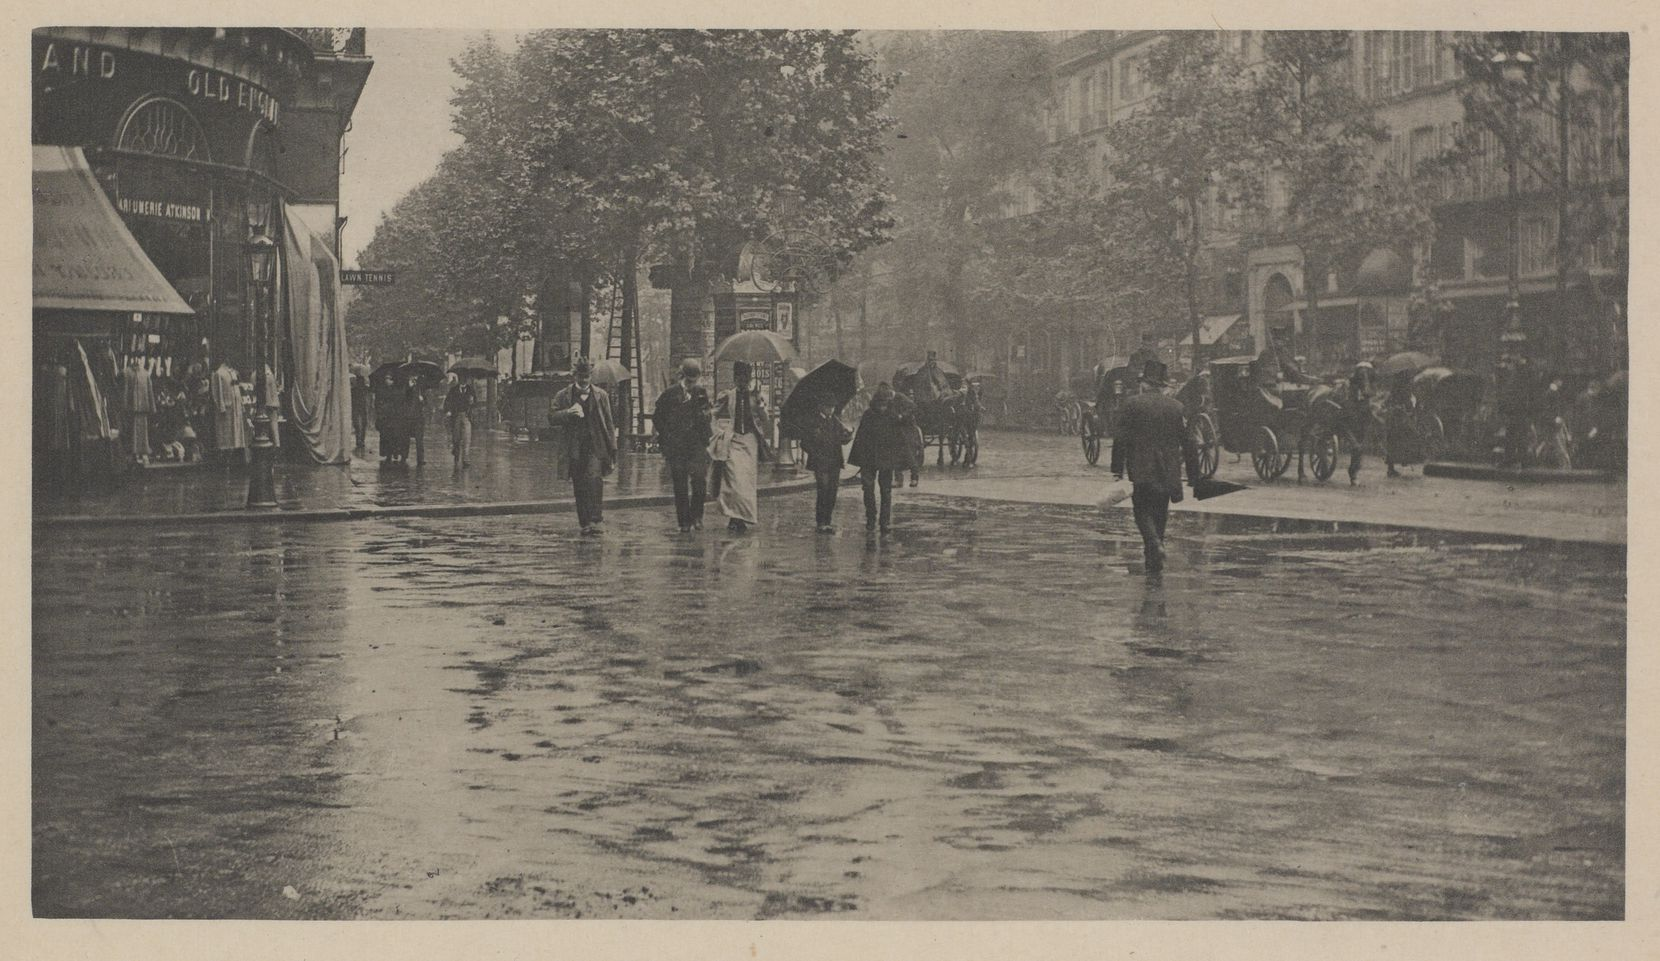 """The show opens with renowned American photographer Alfred Stieglitz's 1894 work """"A Wet Day on the Boulevard, Paris."""""""